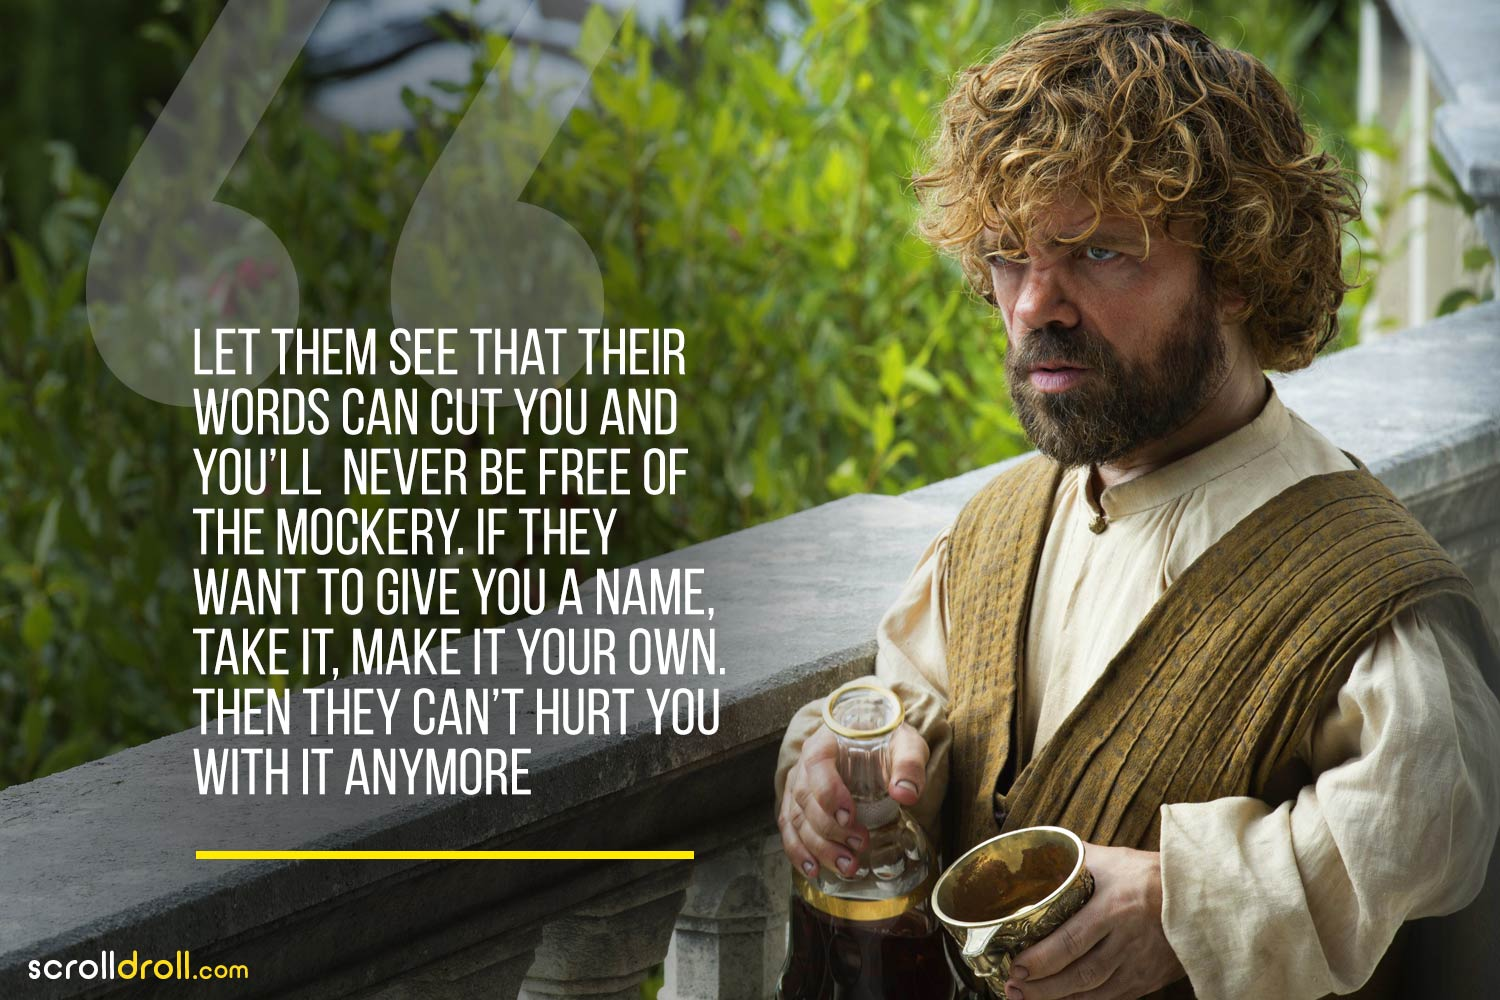 Tyrion-let them see that their words can cut you and you'll never be free of the mockery. If they want to give you a name, take it,make it your own. Then they can't hurt you with it anymore